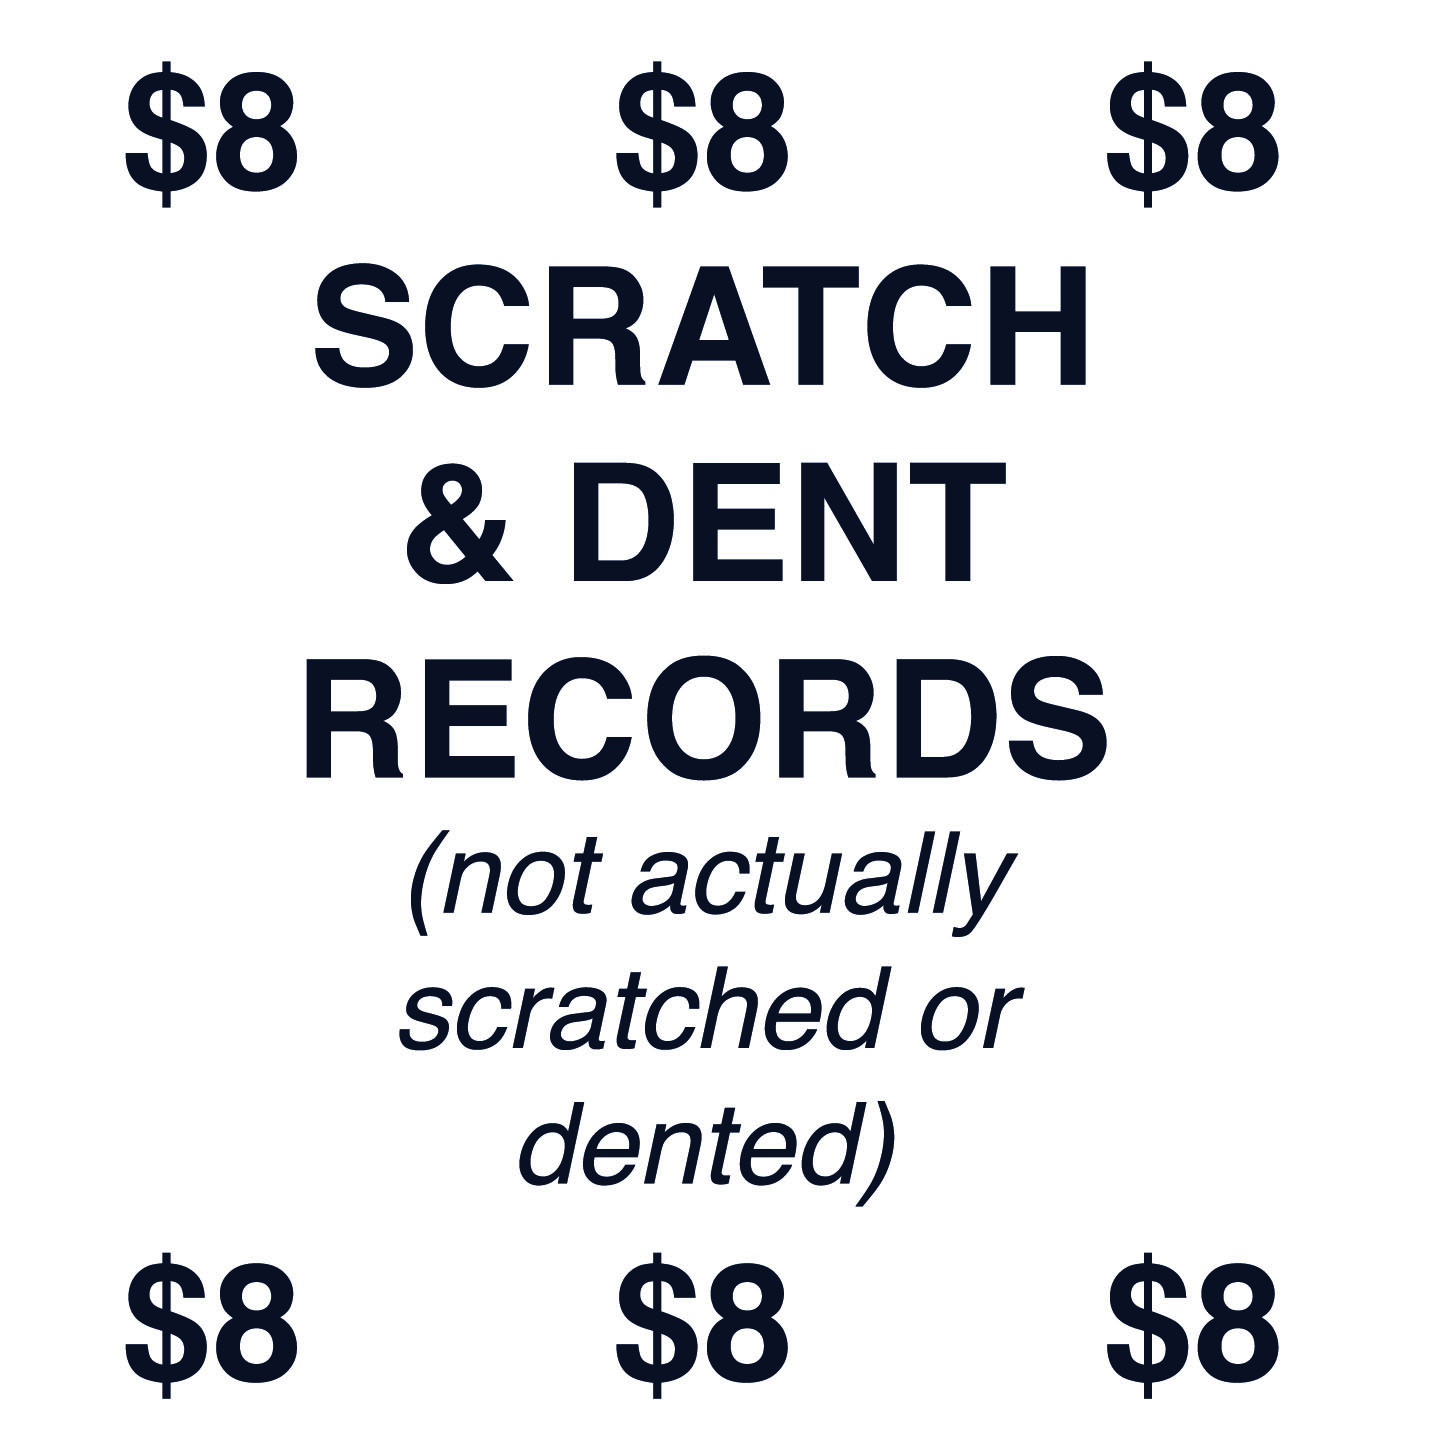 $8 SCRATCH & DENT RECORDS